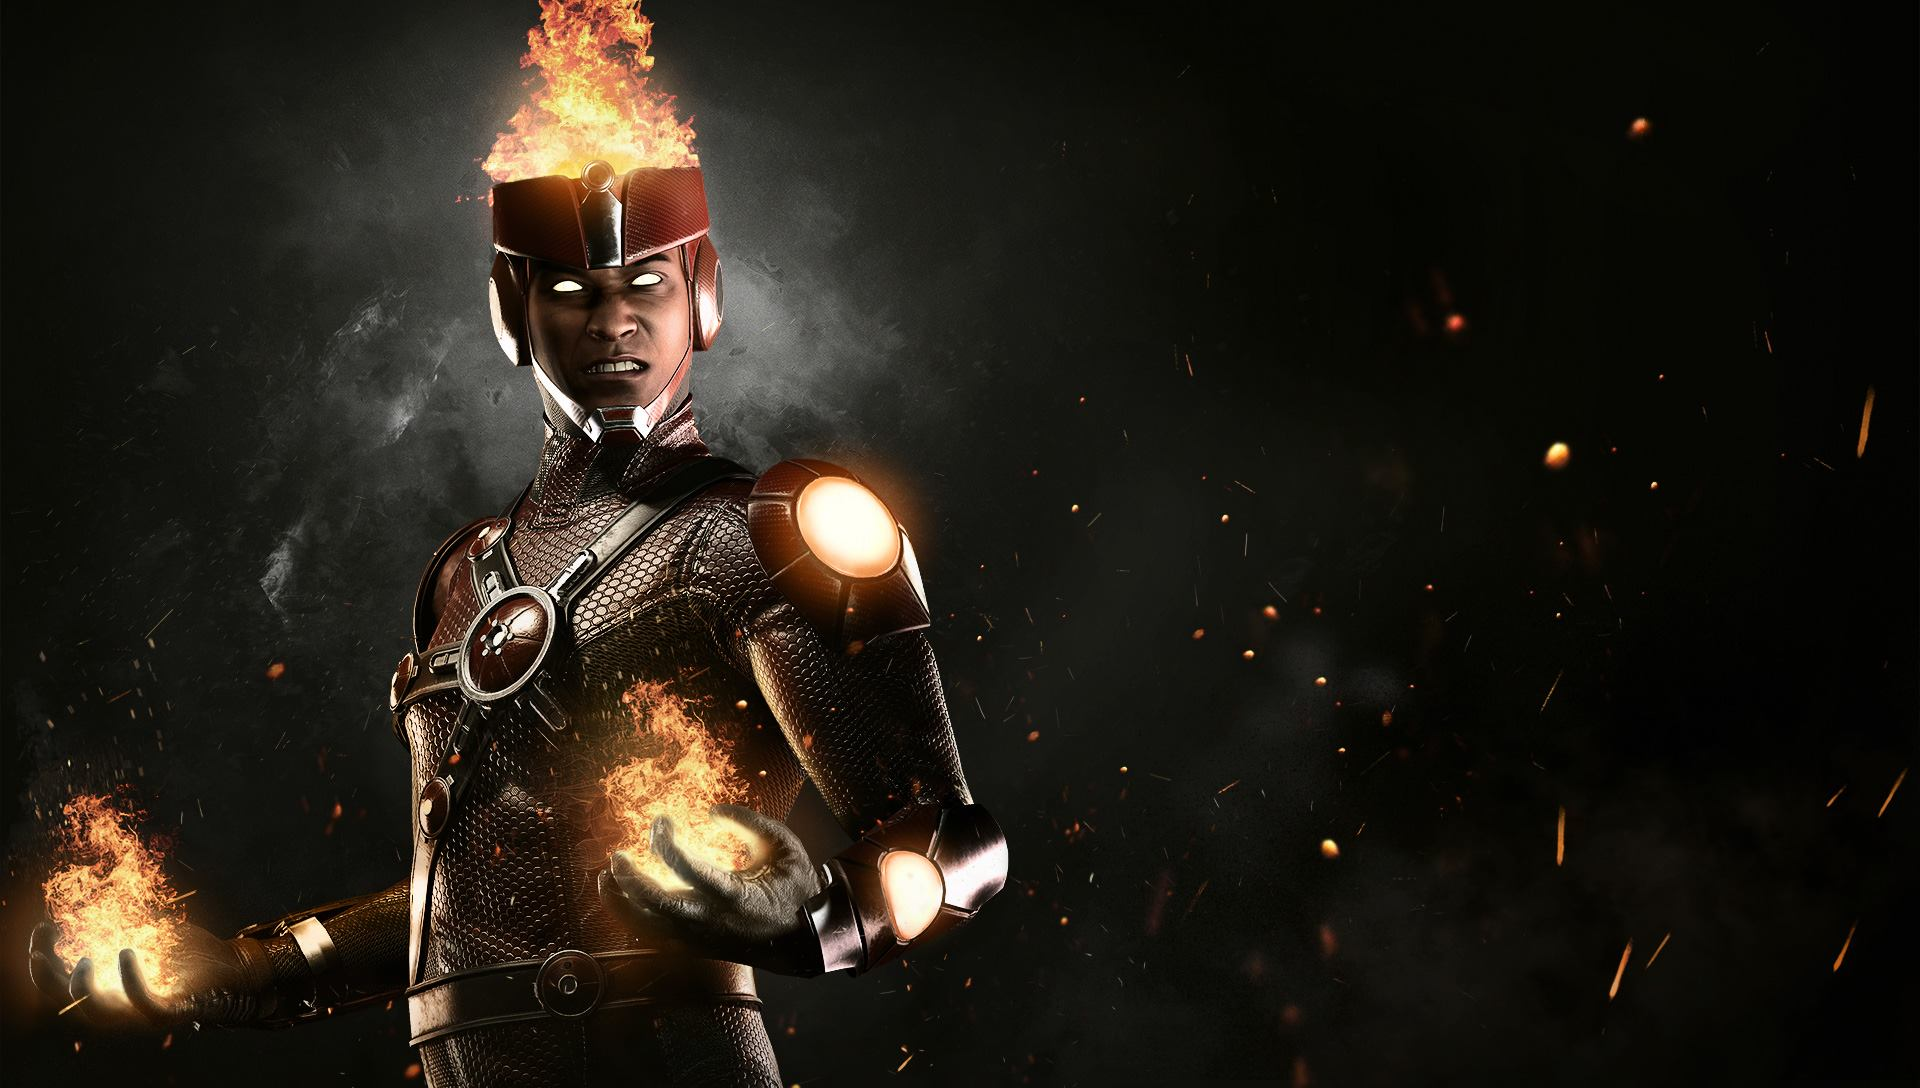 1920x1088 - Firestorm Wallpapers 26